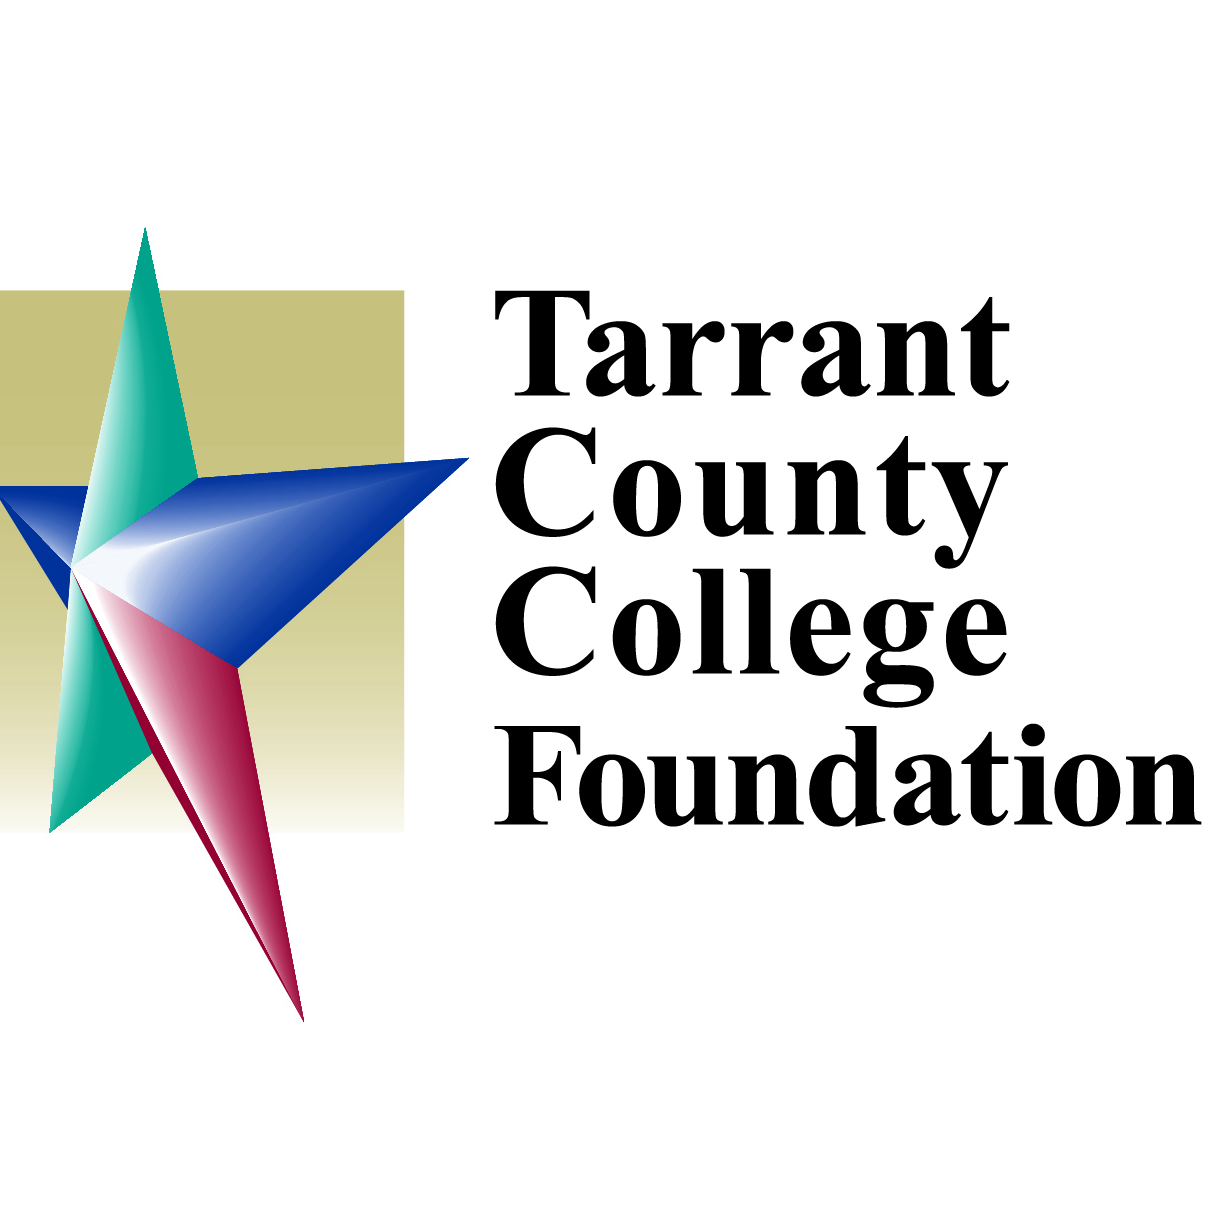 TCCF Logo Square - for AW donor profile site.jpg